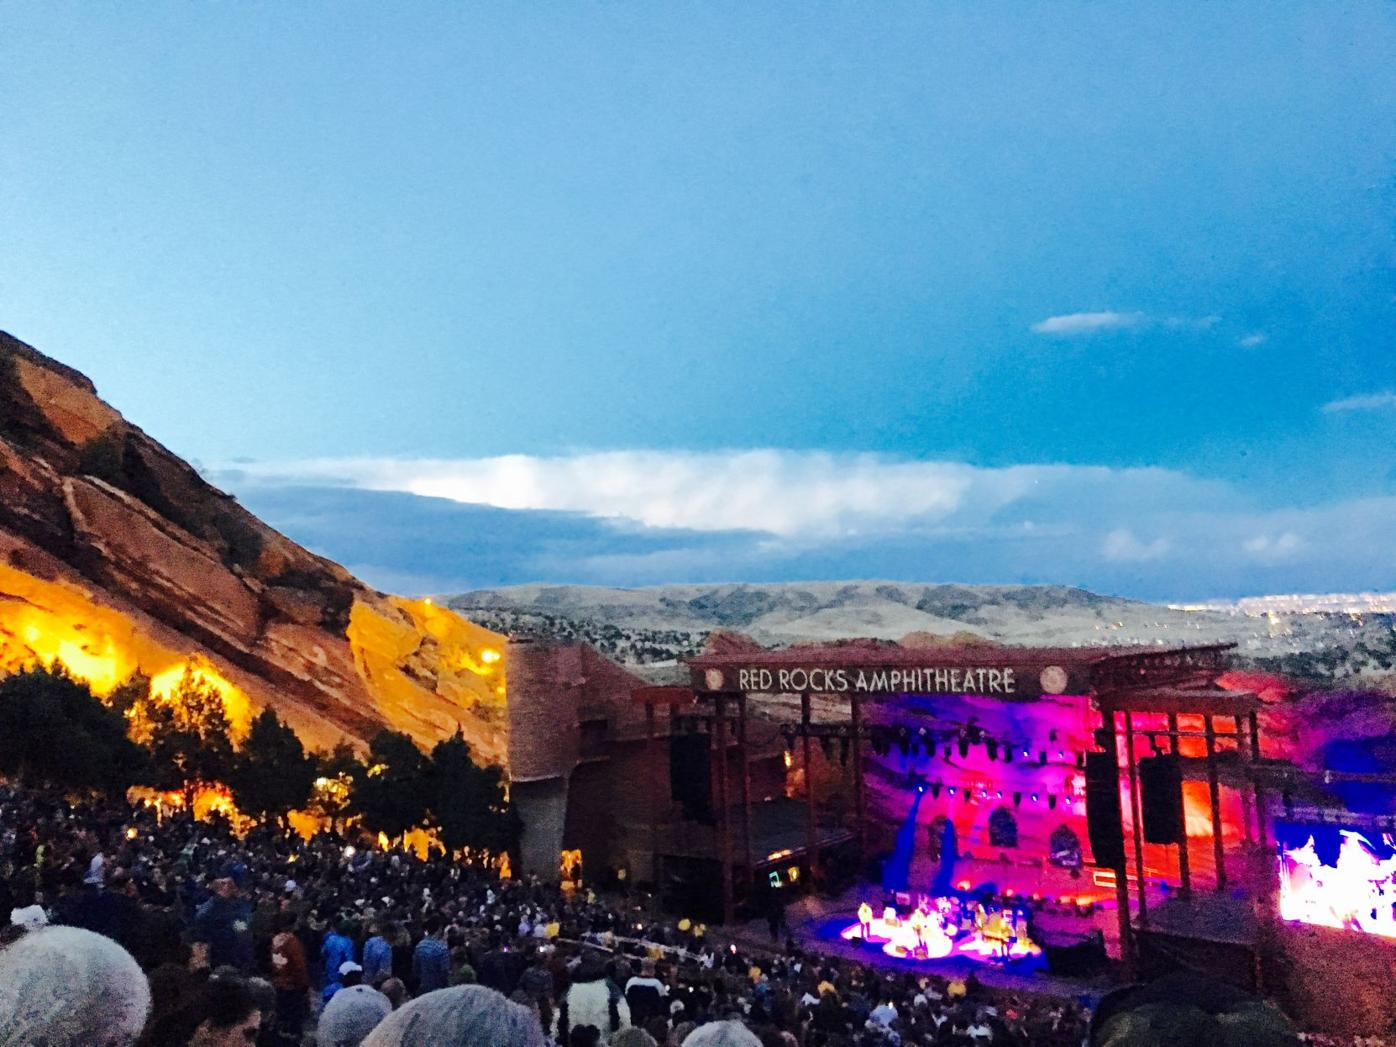 Red Rocks Amphitheatre for Jason Isbell and Lucero in Morrison, Colorado